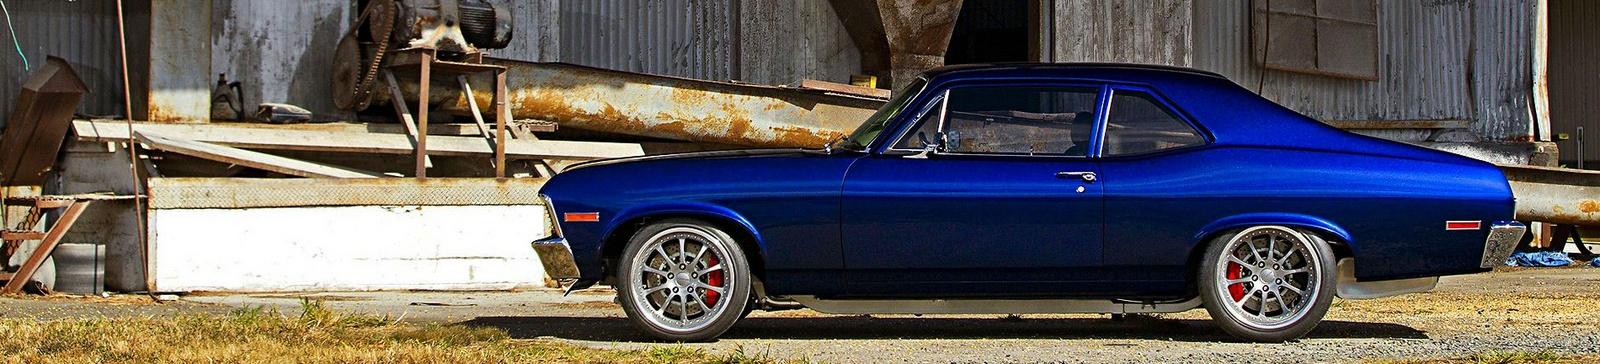 Restomod Chevy Chevelle with aftermarket performance parts